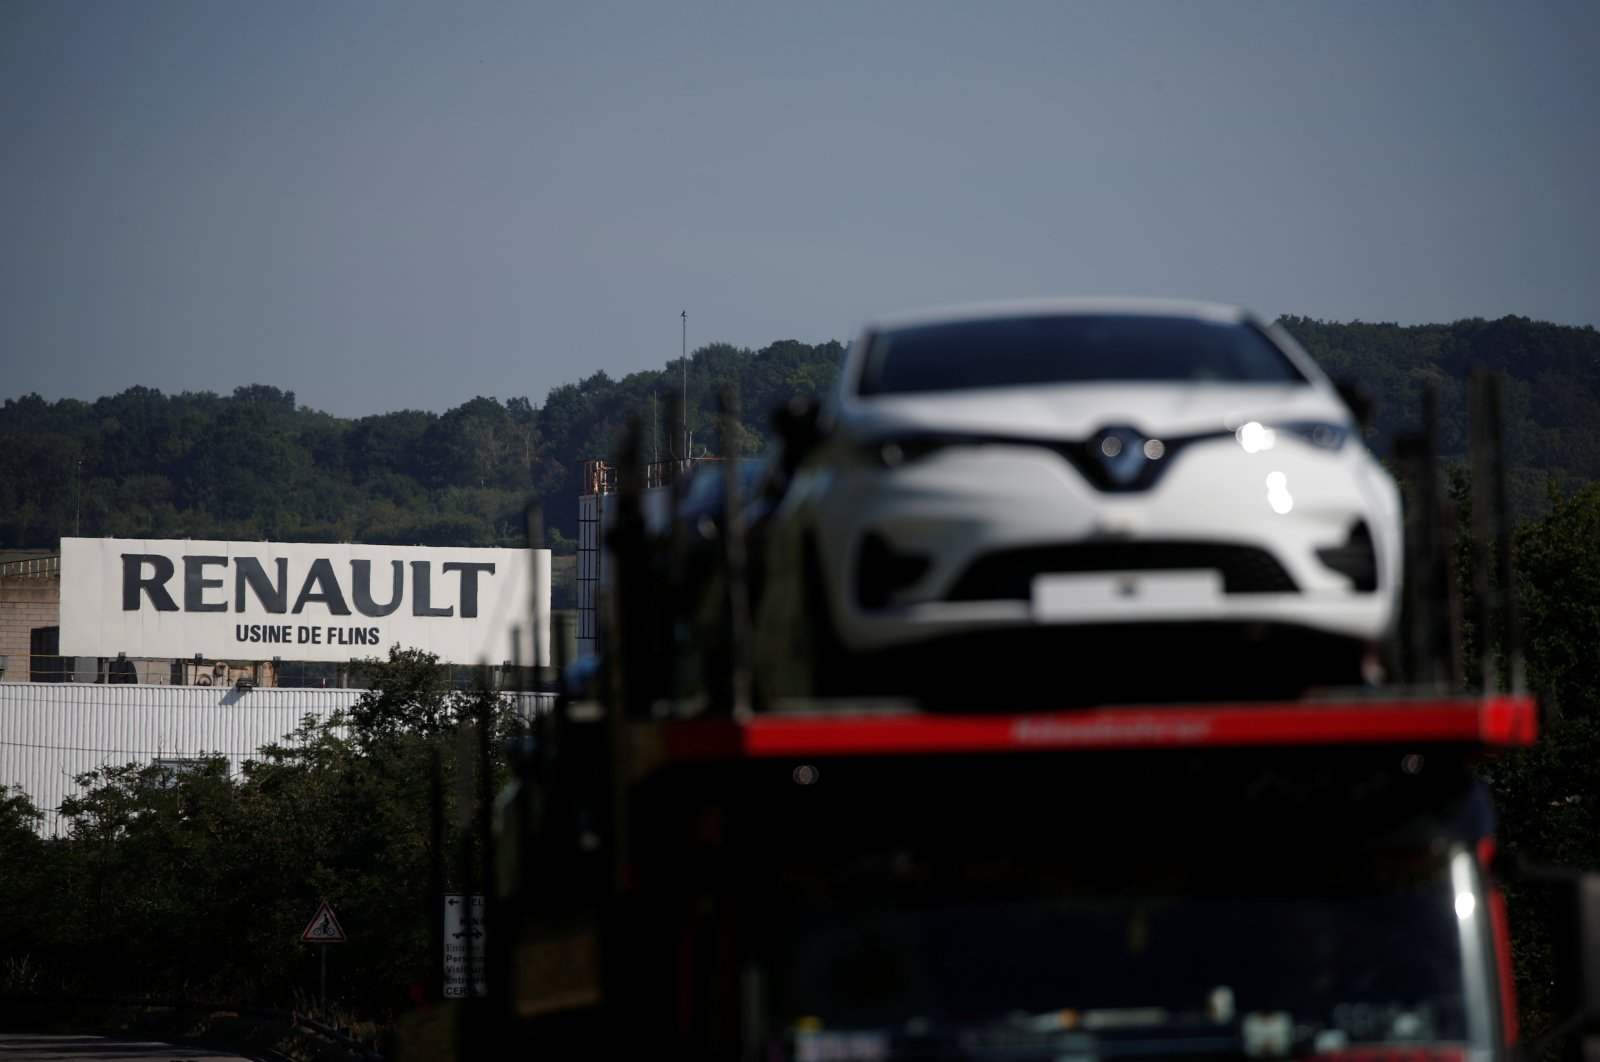 A car carrier transporting Renault ZOE cars leaves the Flins plant of French carmaker Renault in Aubergenville, west of Paris, following the outbreak of the coronavirus in France, May 26, 2020. (Reuters Photo)